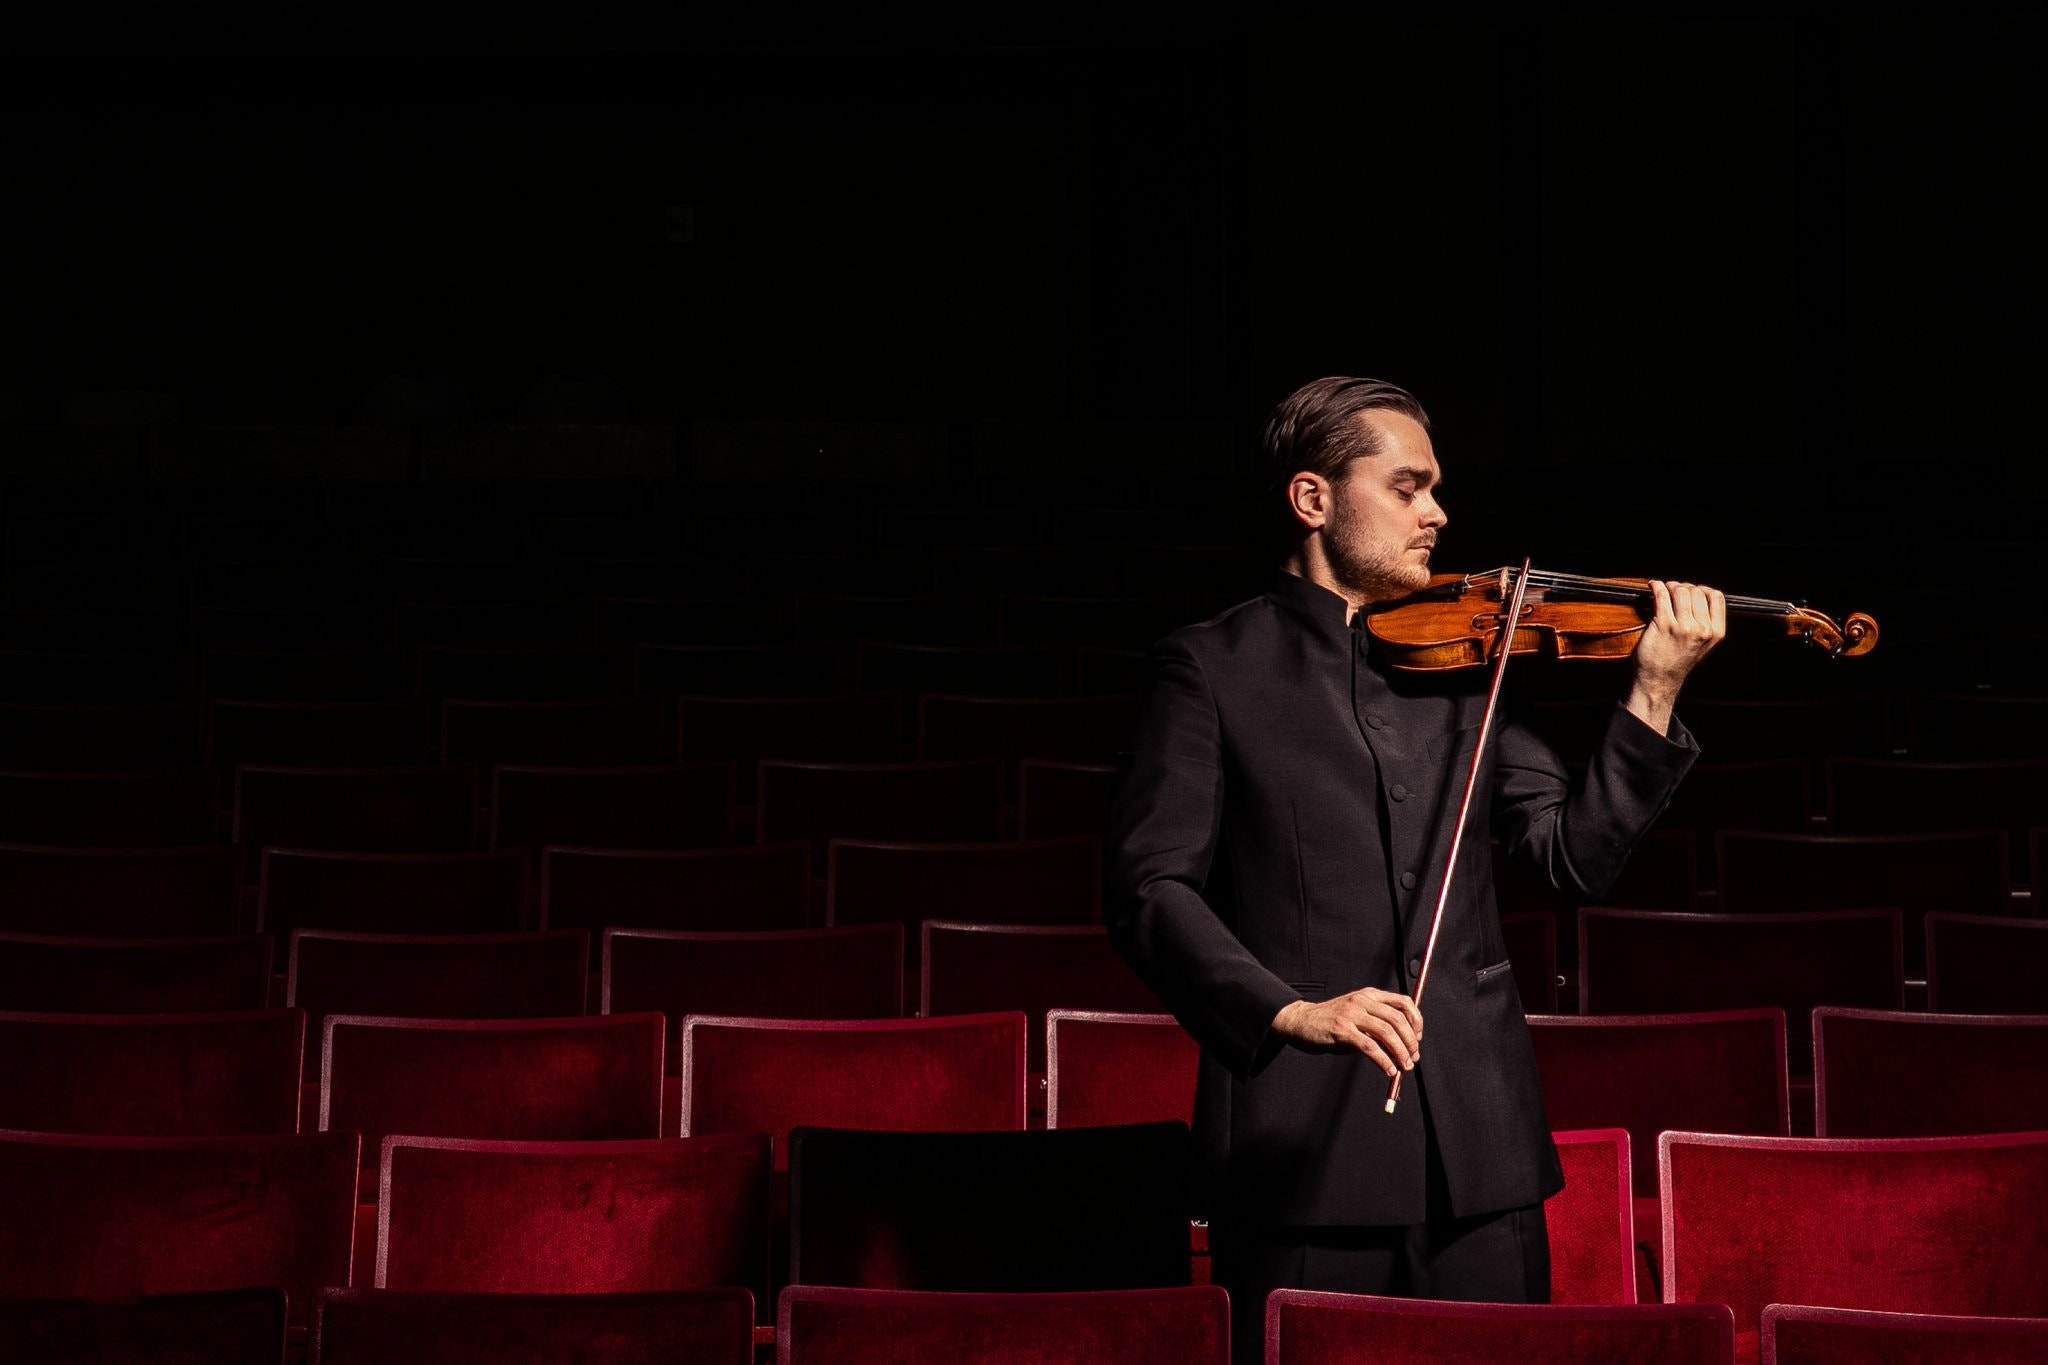 New York Times:How One Violinist Conducts an Entire Bel Canto Opera - July 11, 2019